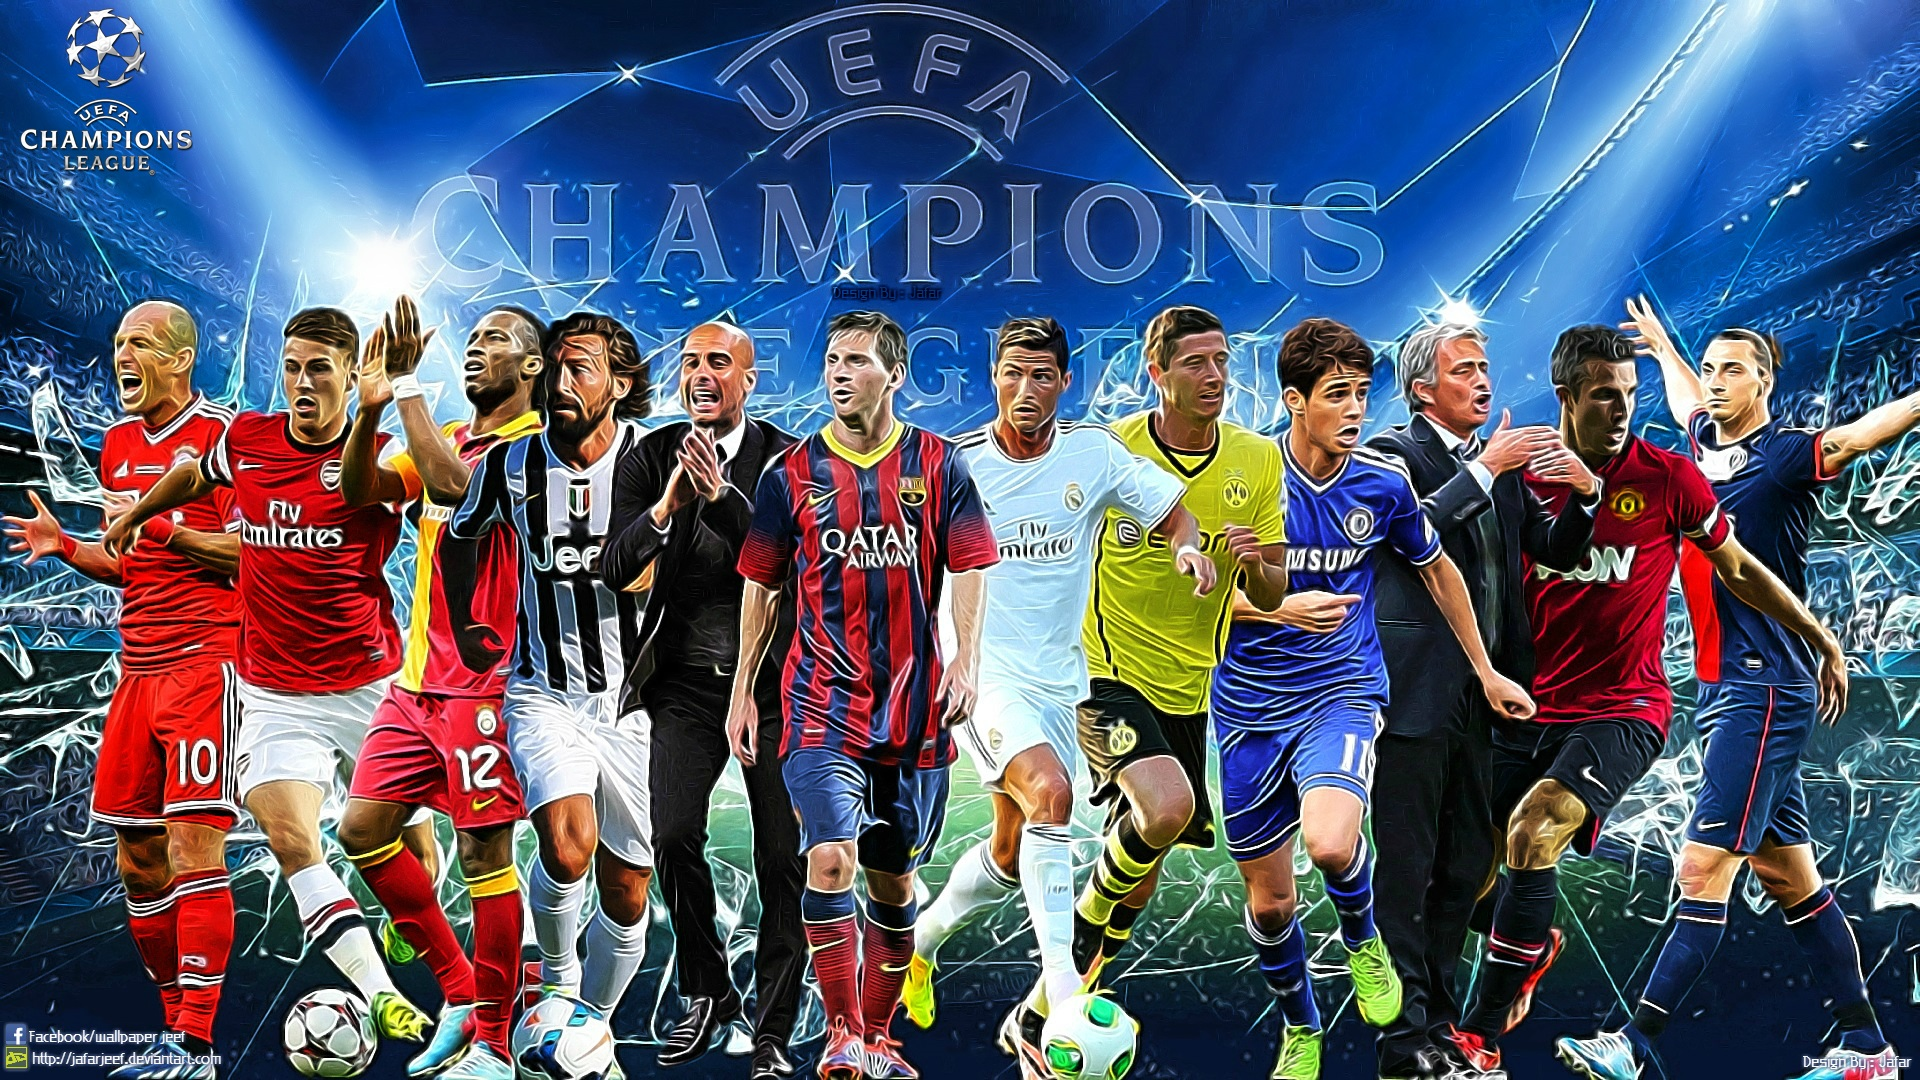 6 UEFA Champions League HD Wallpapers